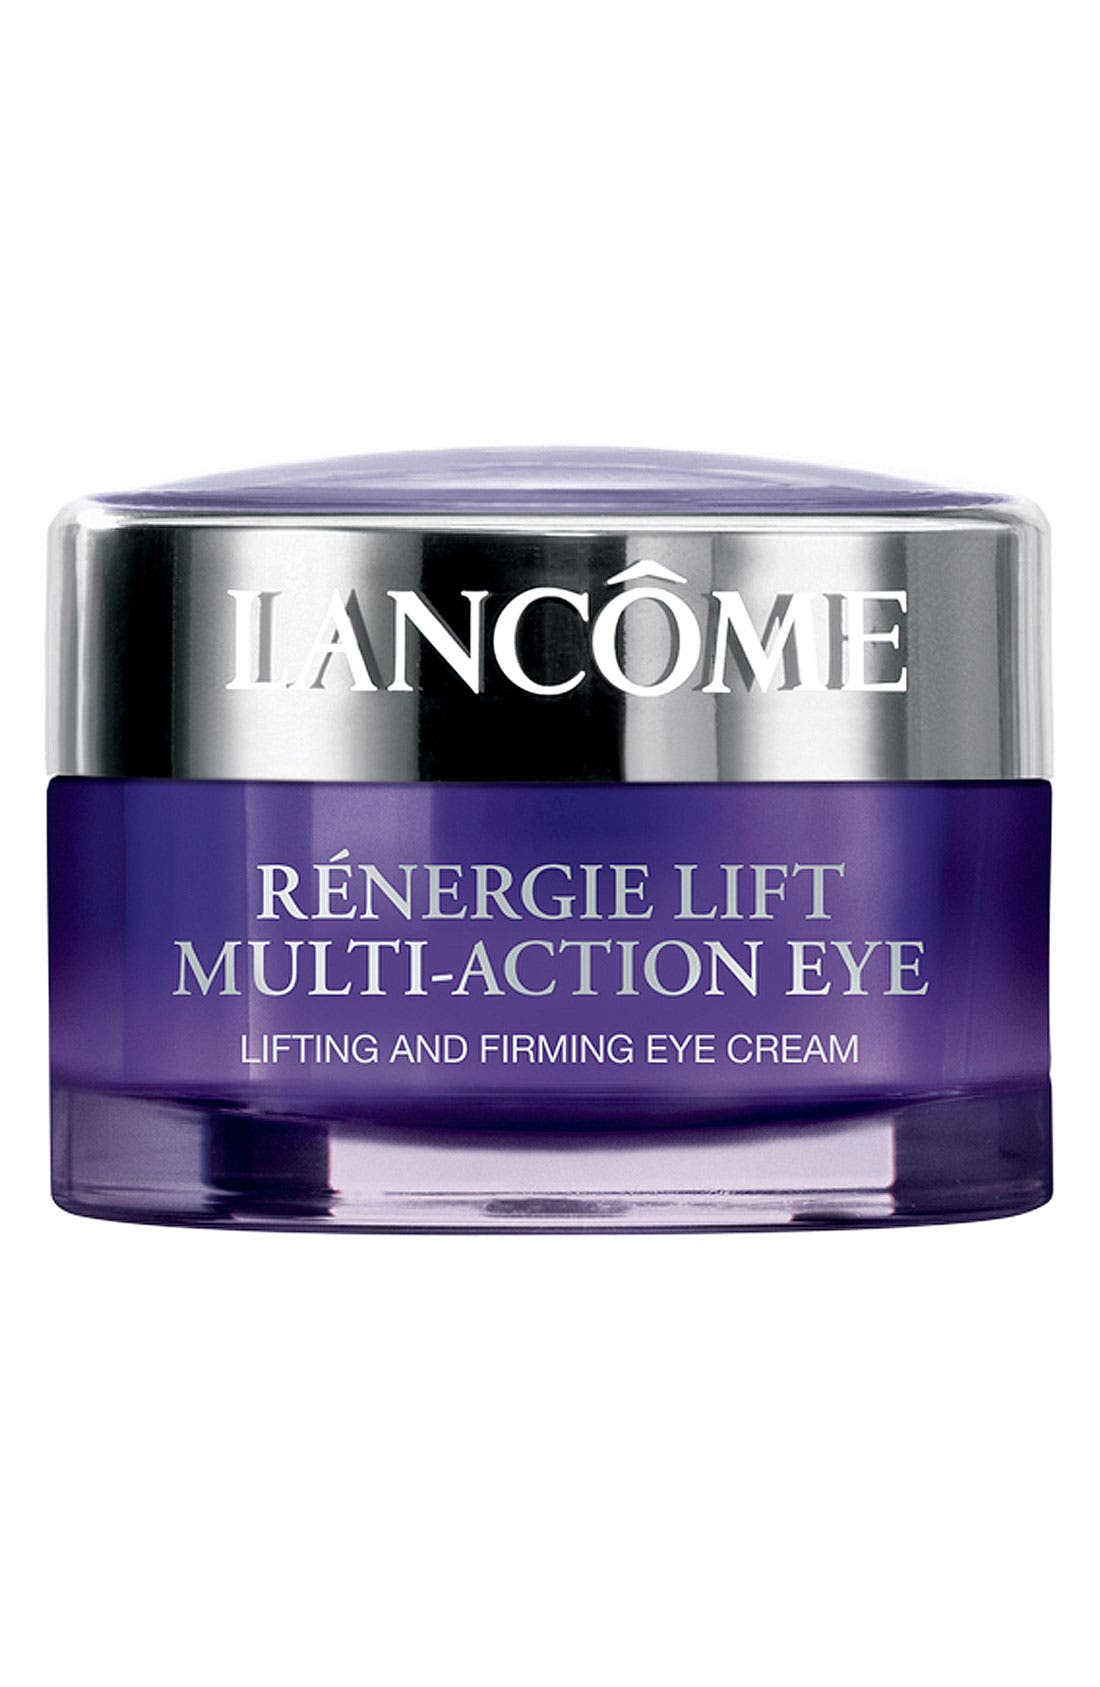 Rénergie Lift Multi-Action Lifting and Firming Eye Cream,                             Main thumbnail 1, color,                             NO COLOR